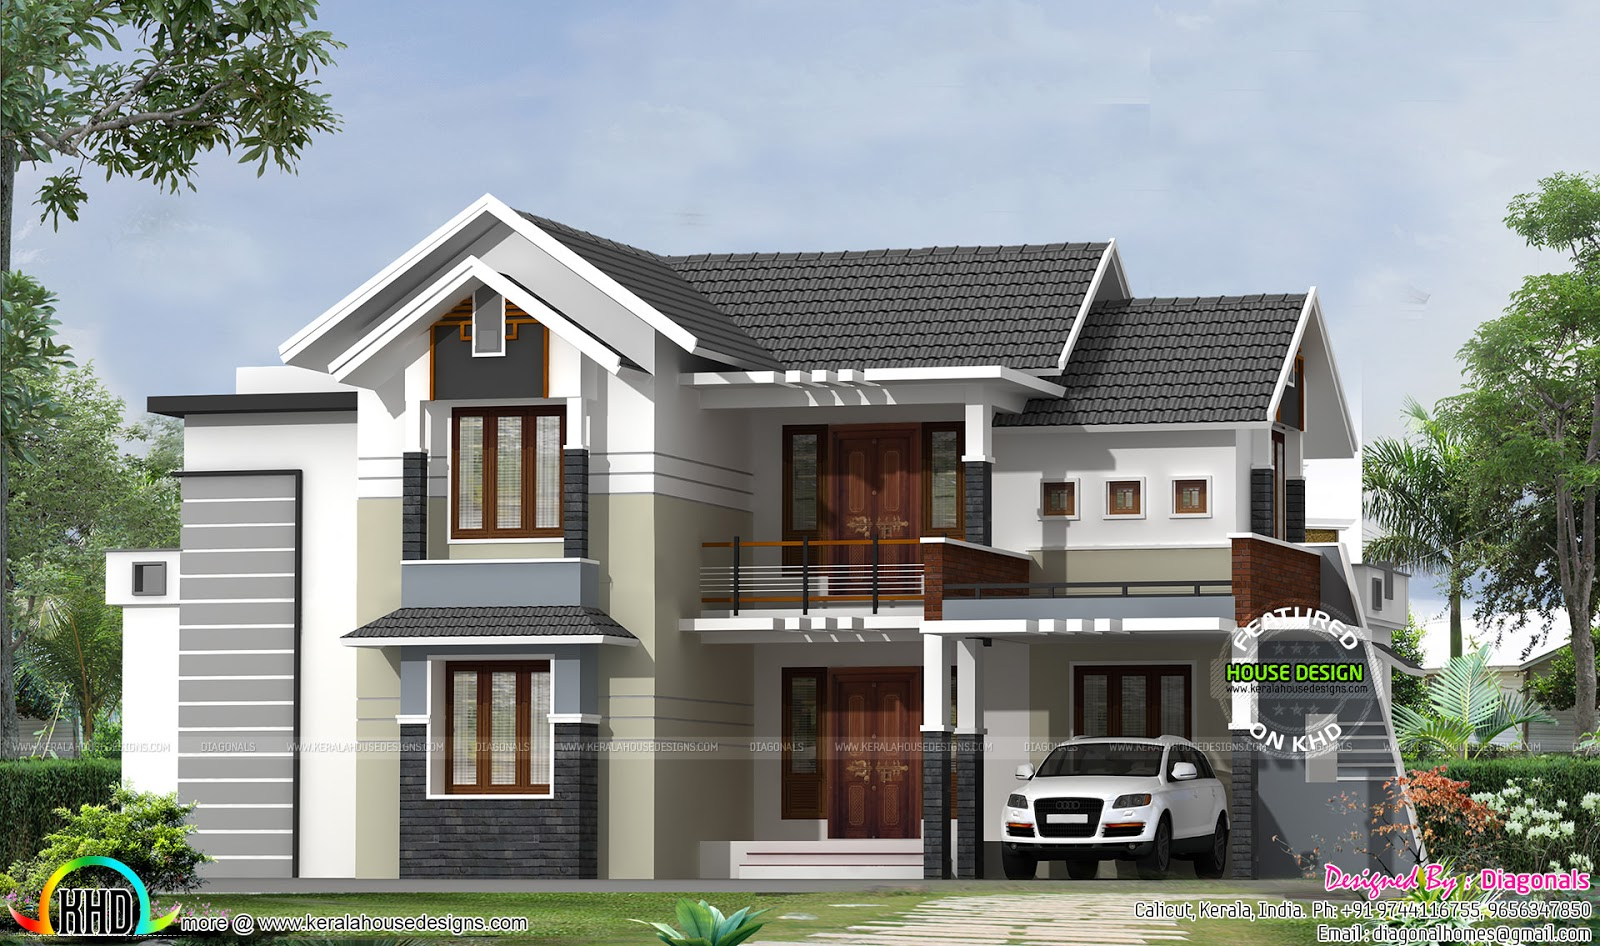 Modern mix traditional house architecture kerala home for Traditional home design ideas